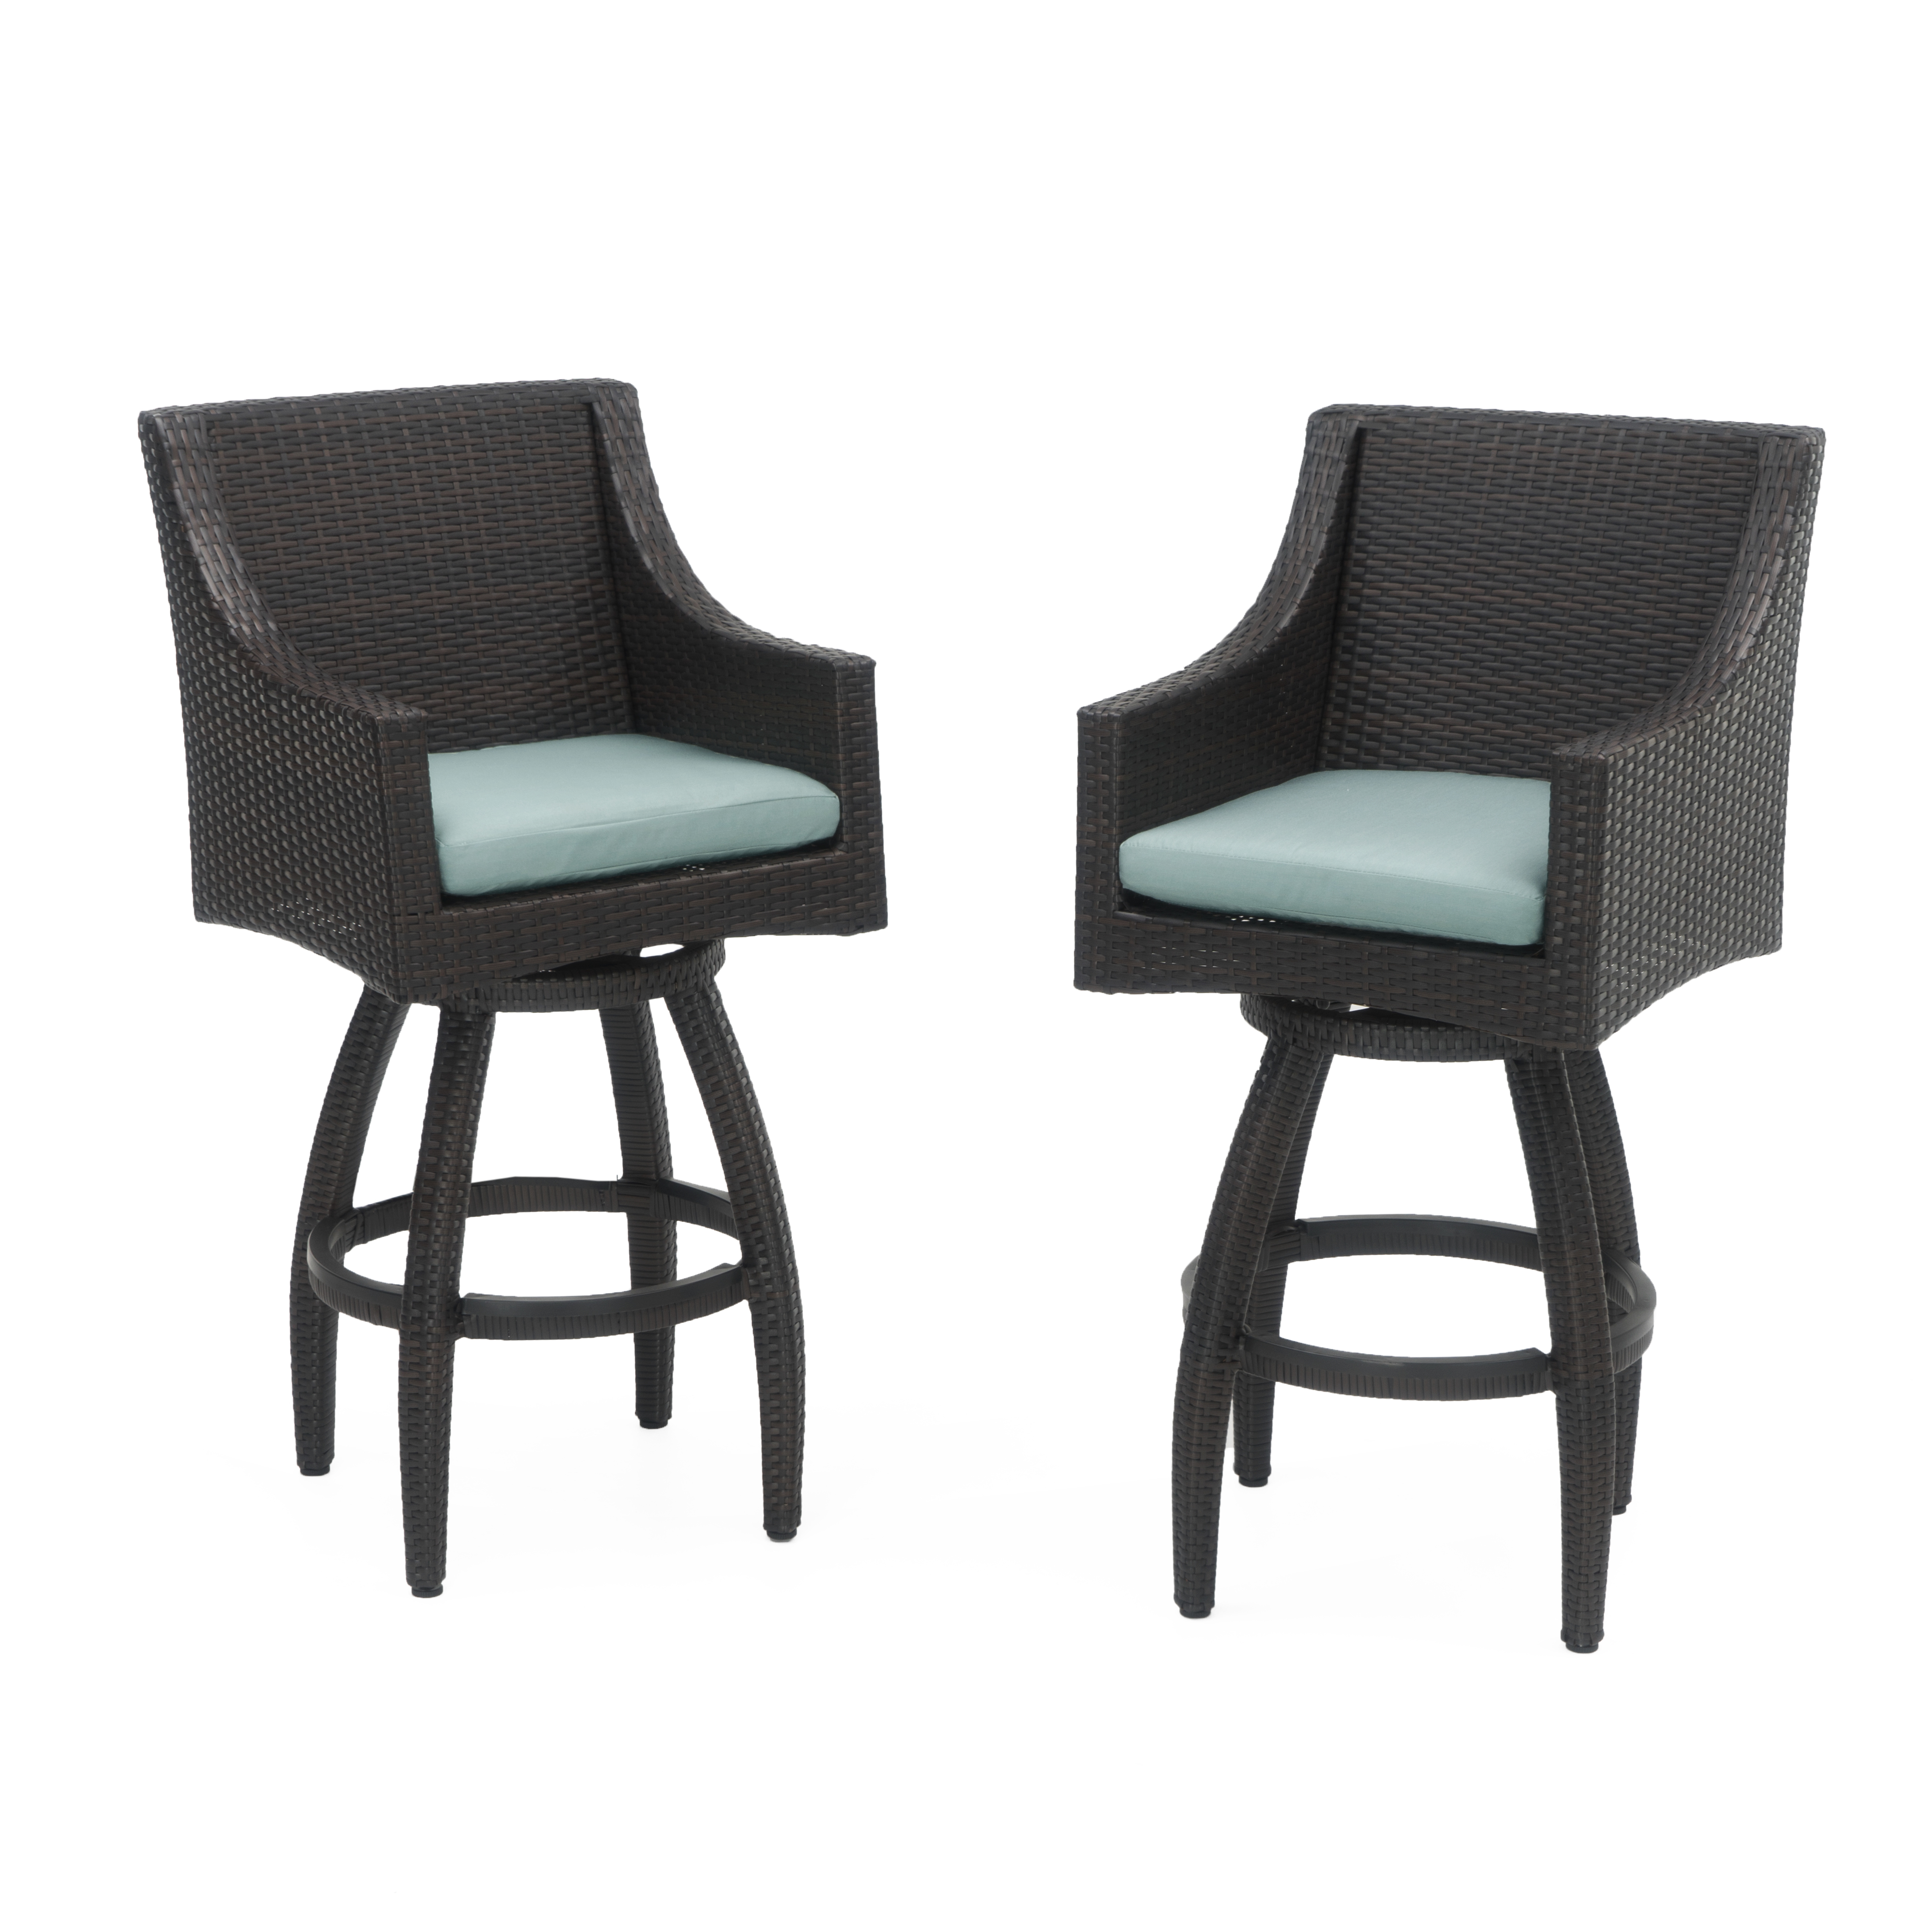 Deco Set of 2 Swivel Barstools in Bliss Blue by RST Brands